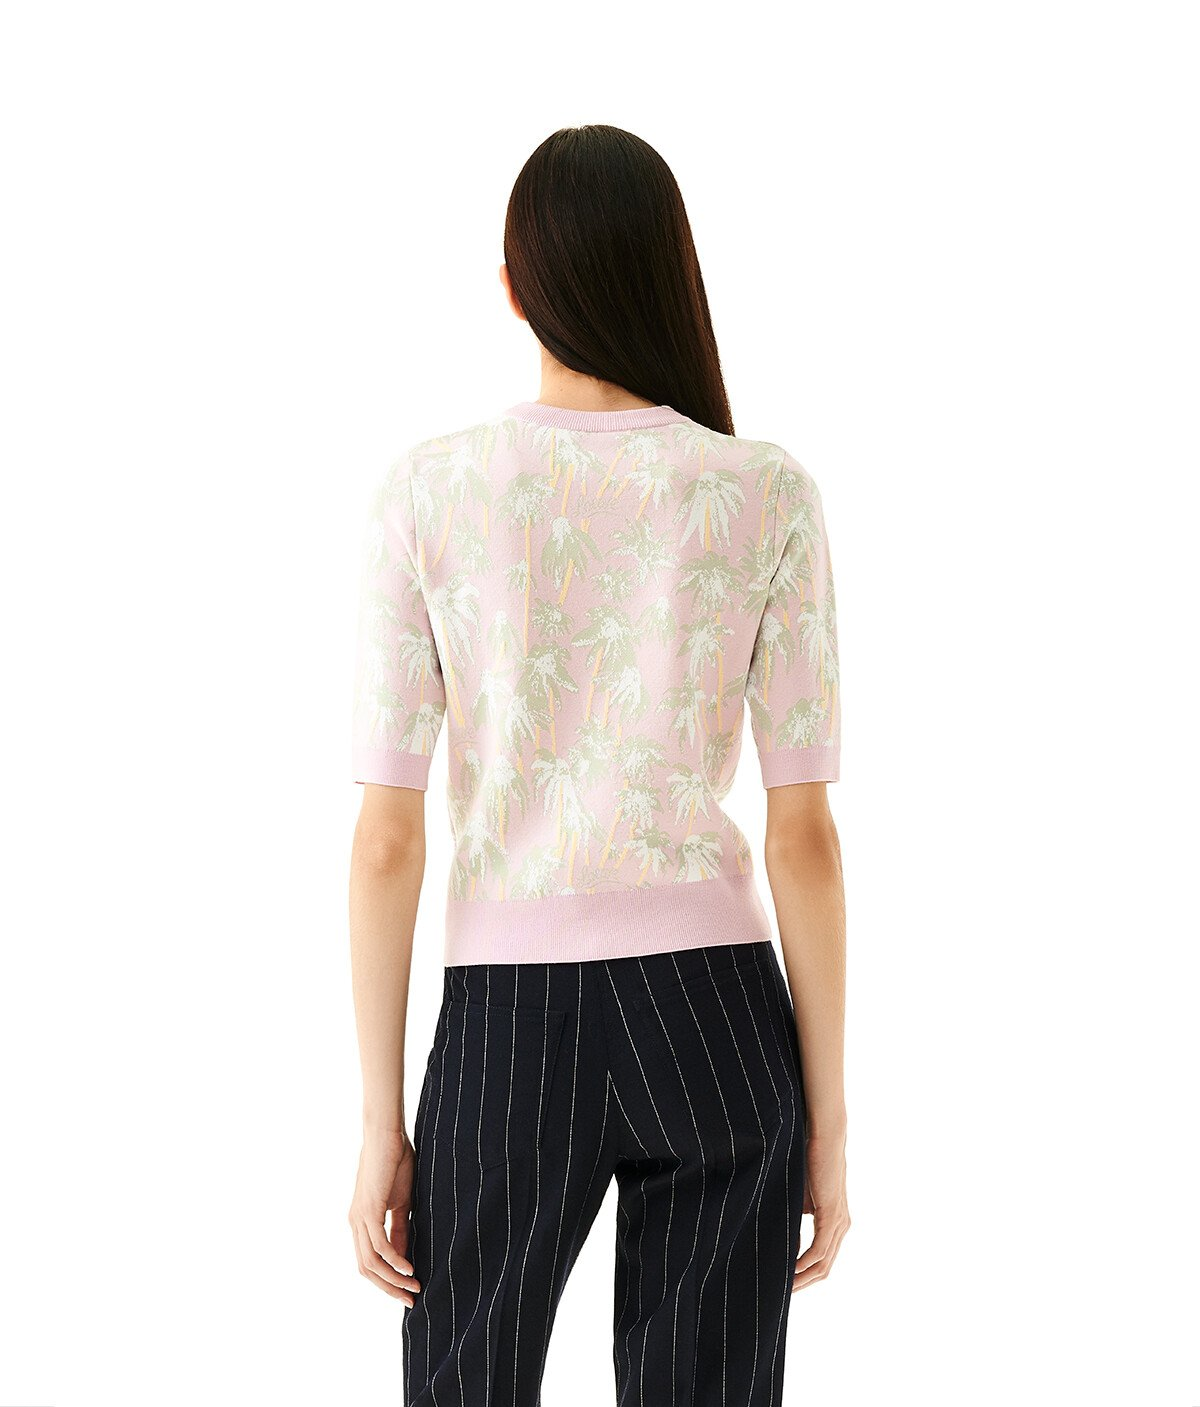 LOEWE Daisy Jacquard Cropped Sweater Pink/Light Green front